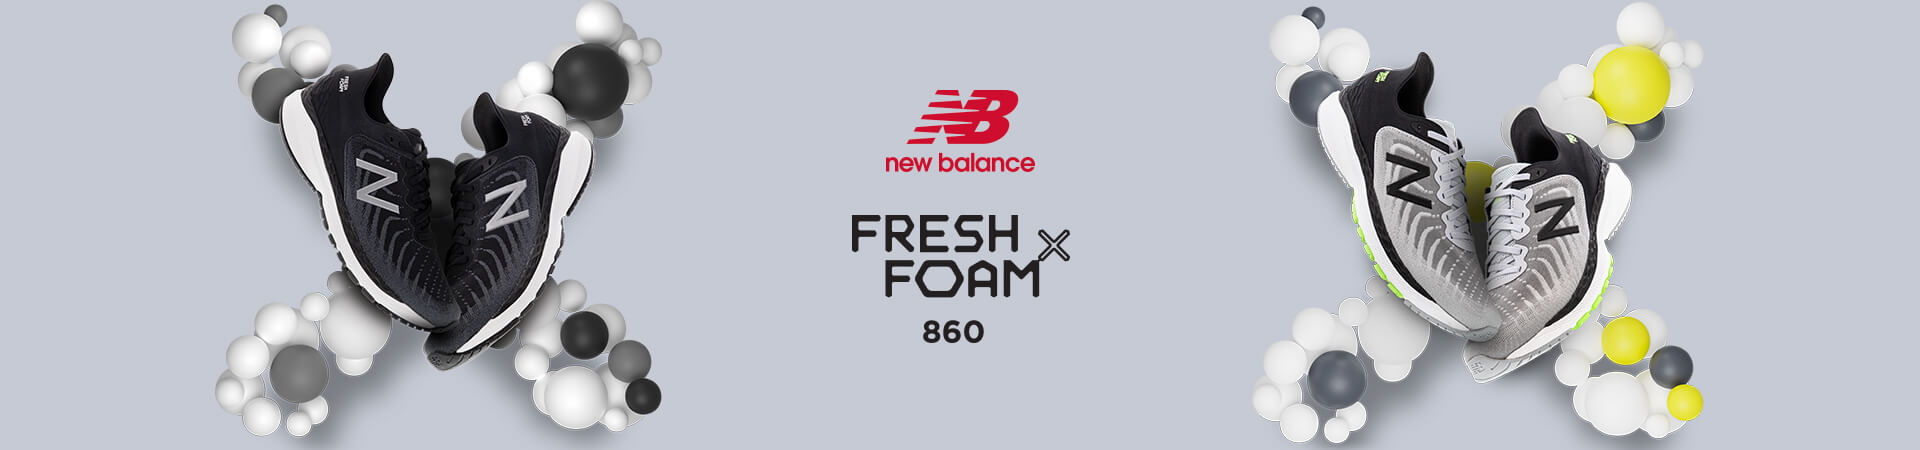 New Balance 860 running shoes